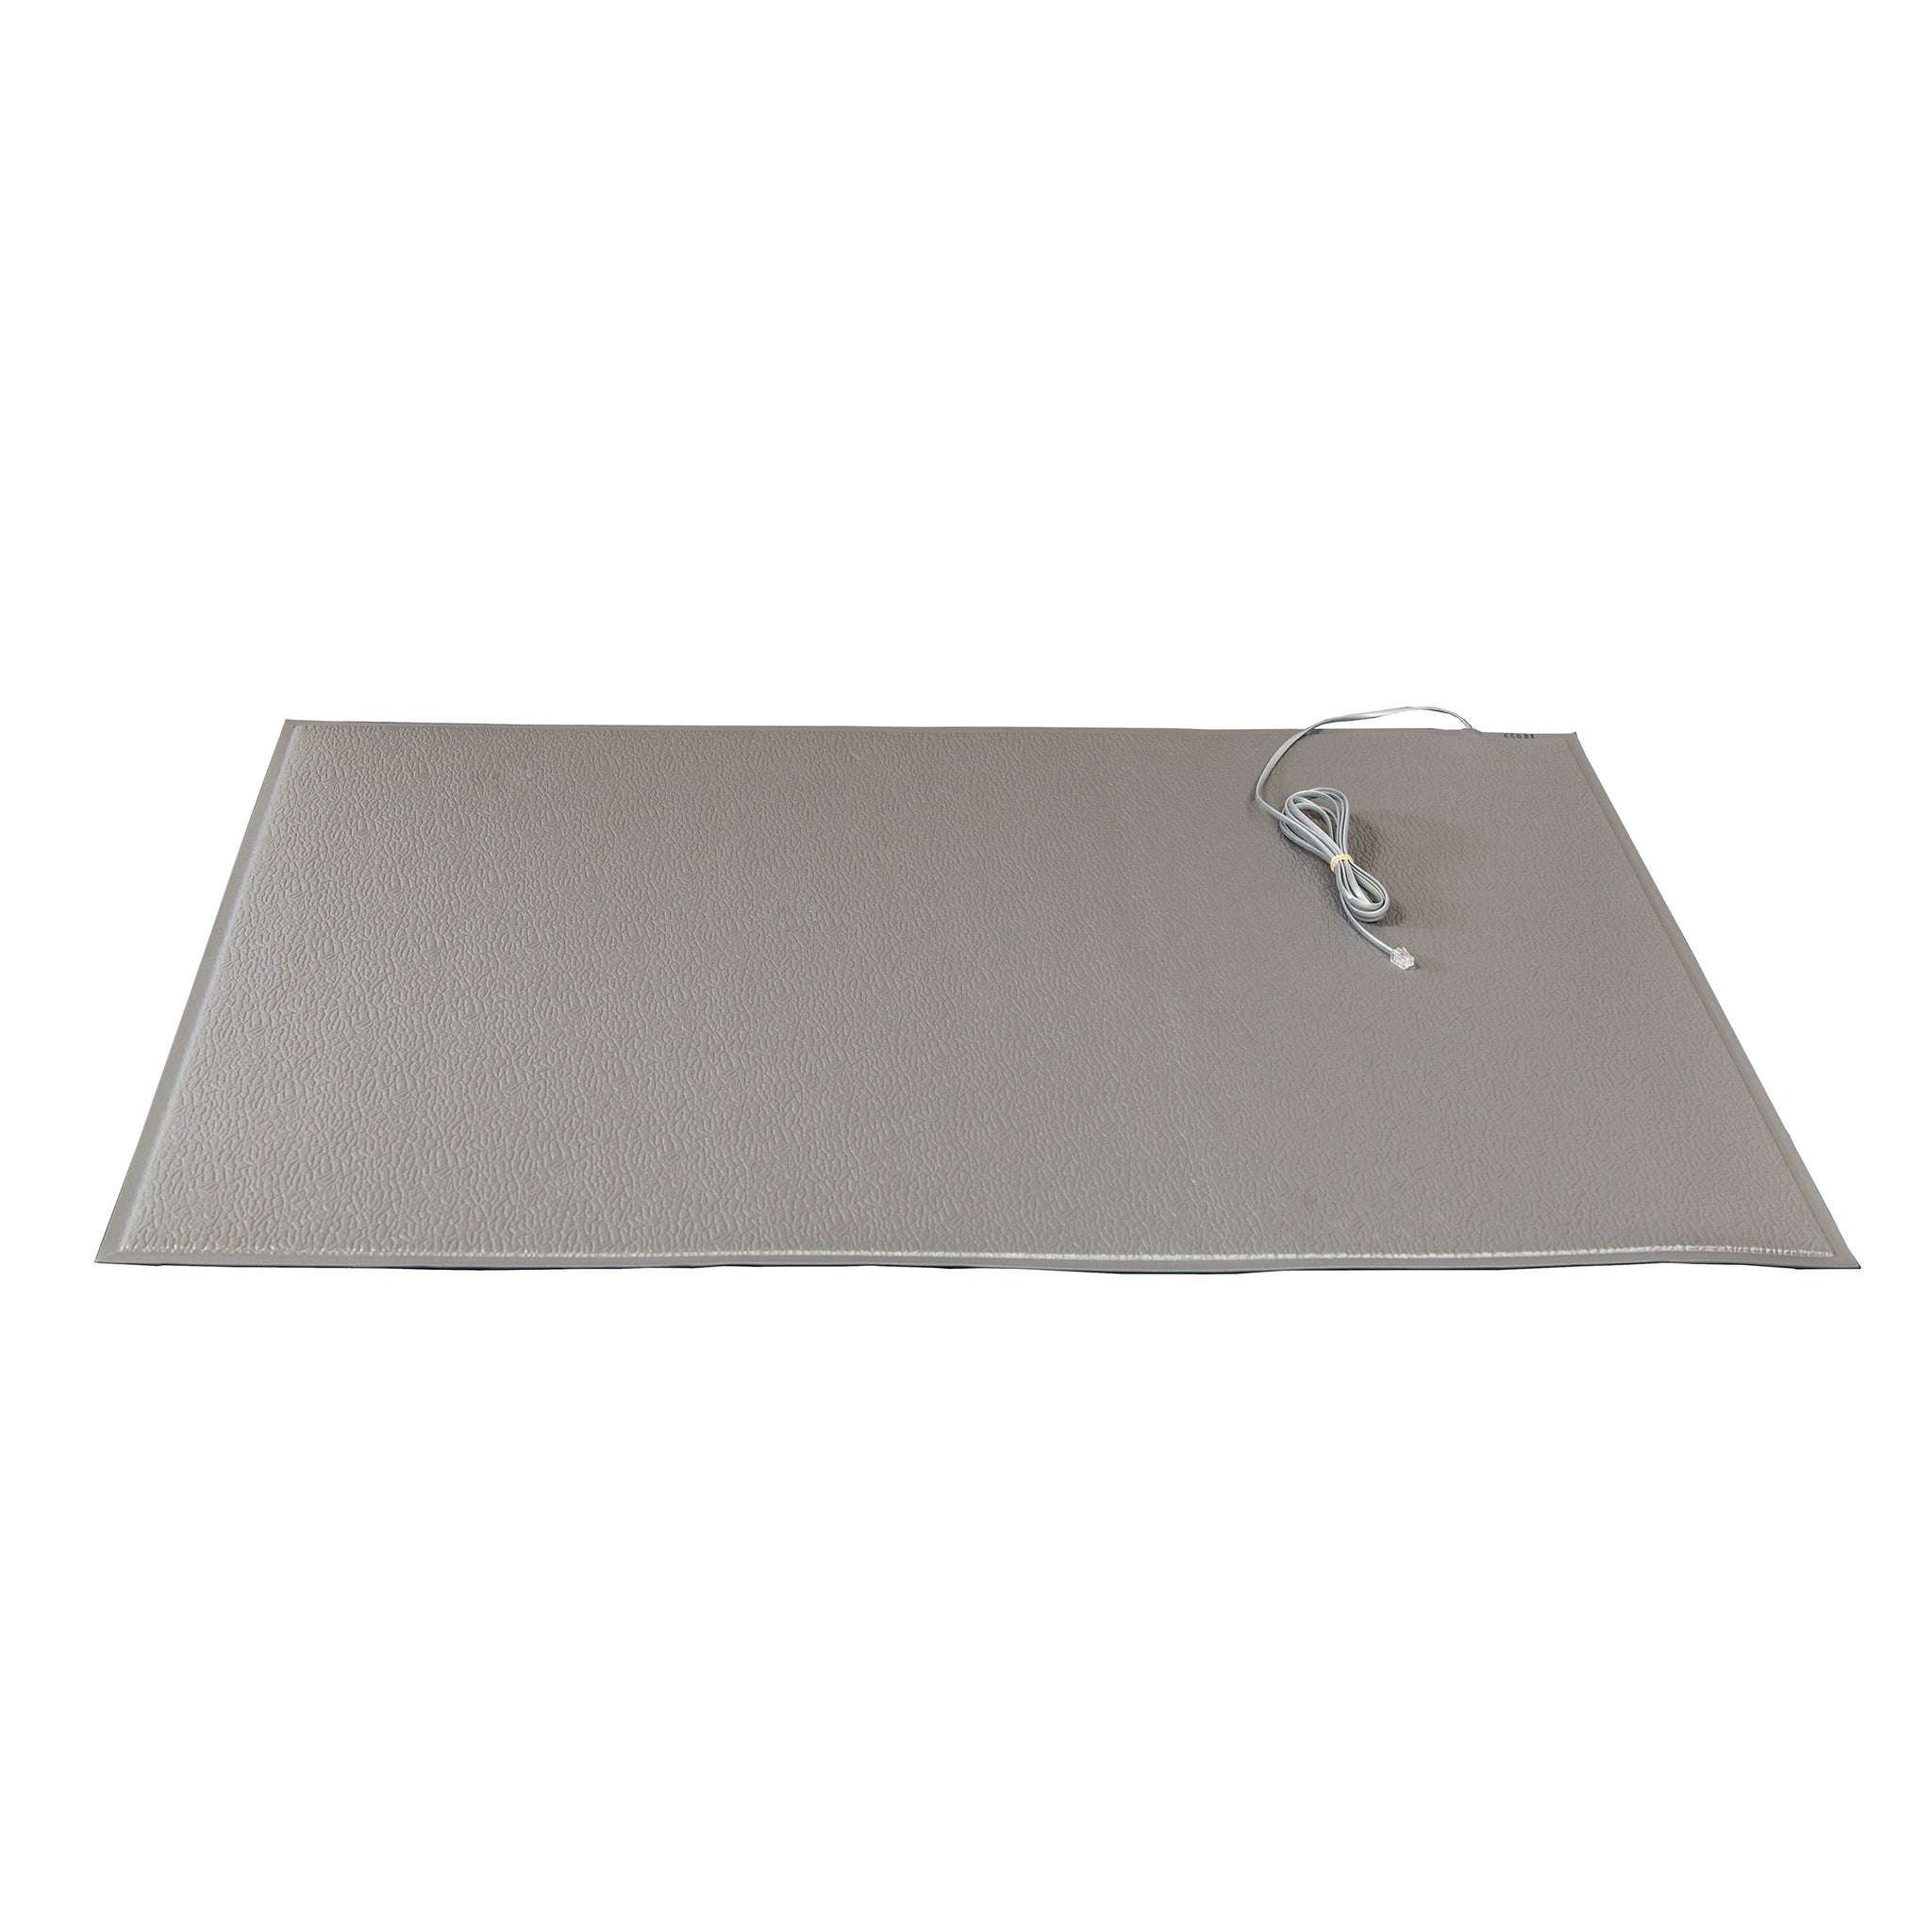 Smart Caregiver Corded Weight-Sensing Replacement Floor Mat